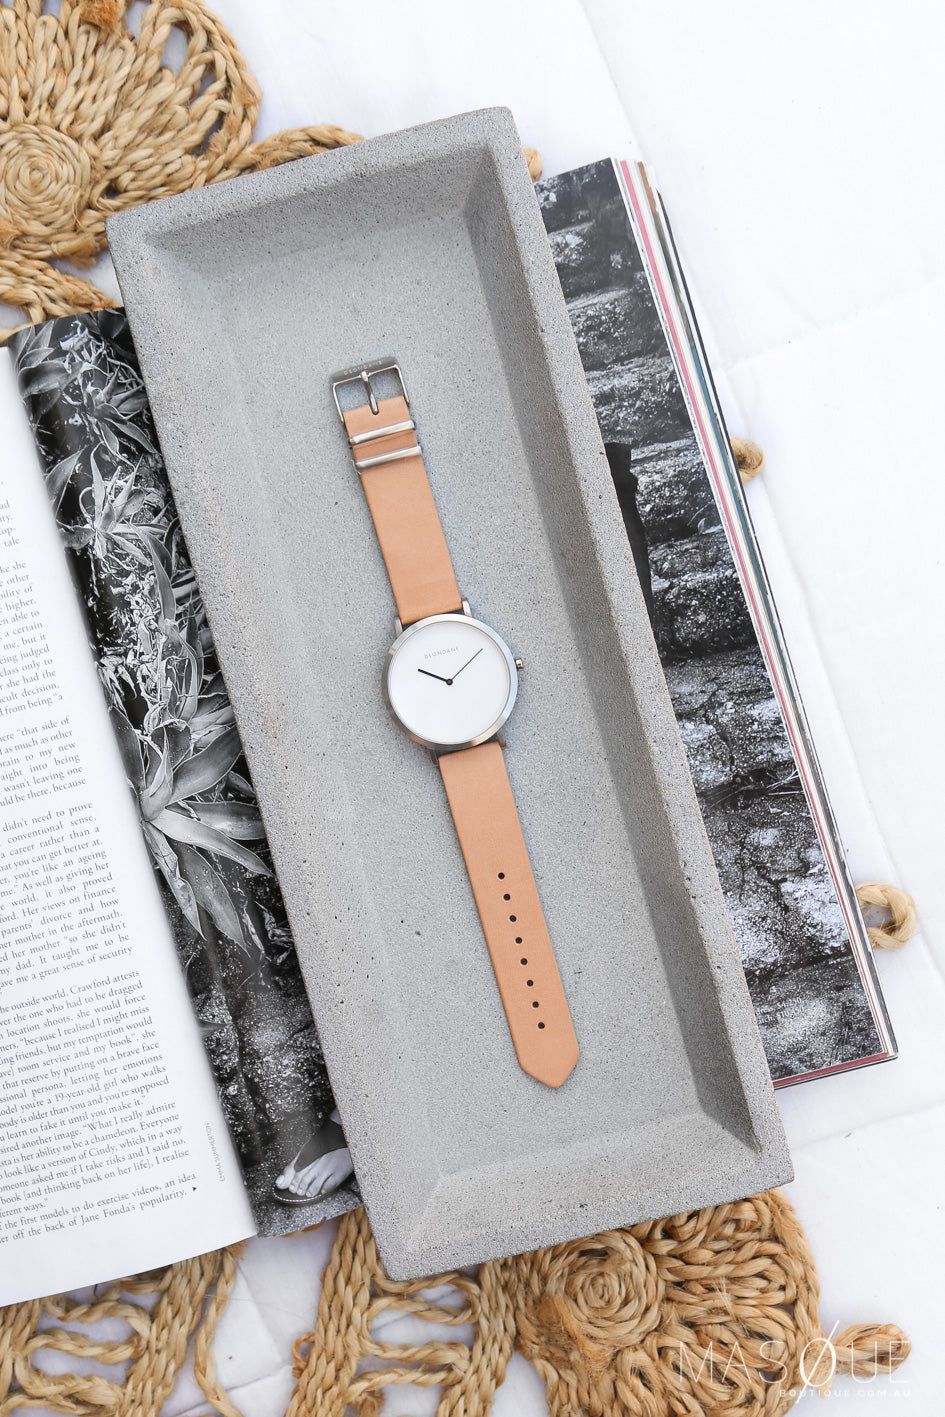 deondane silver watch in nude